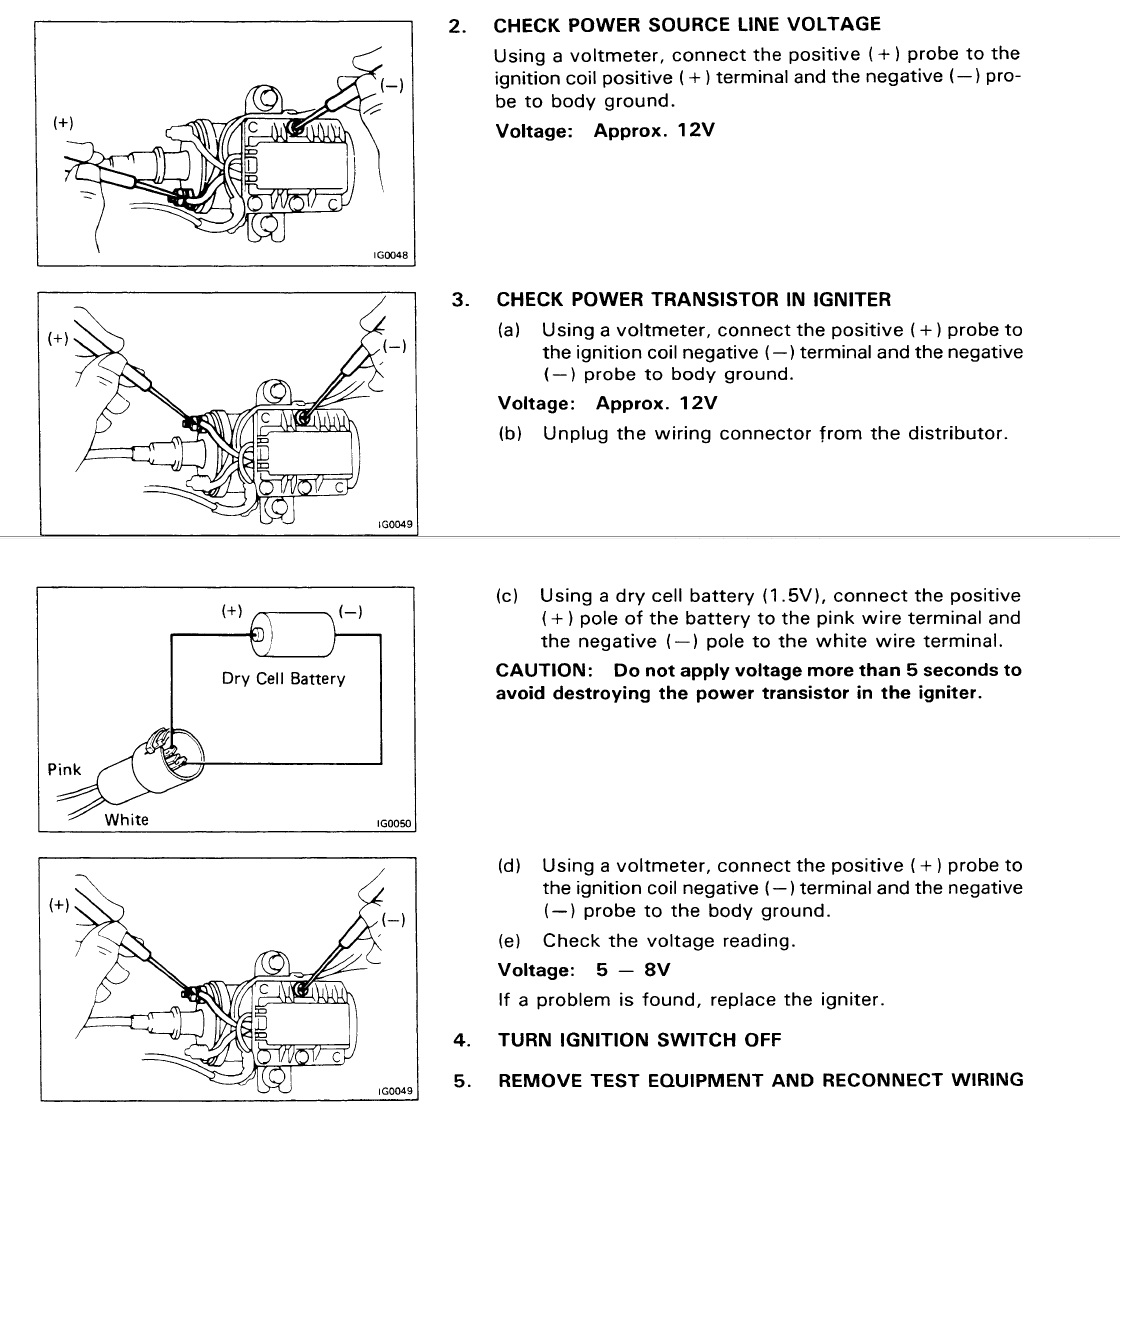 r ignition coil wiring diagram r image wiring 86 toyota 4x4 22re engine started worse the more i drove it on 22r ignition coil